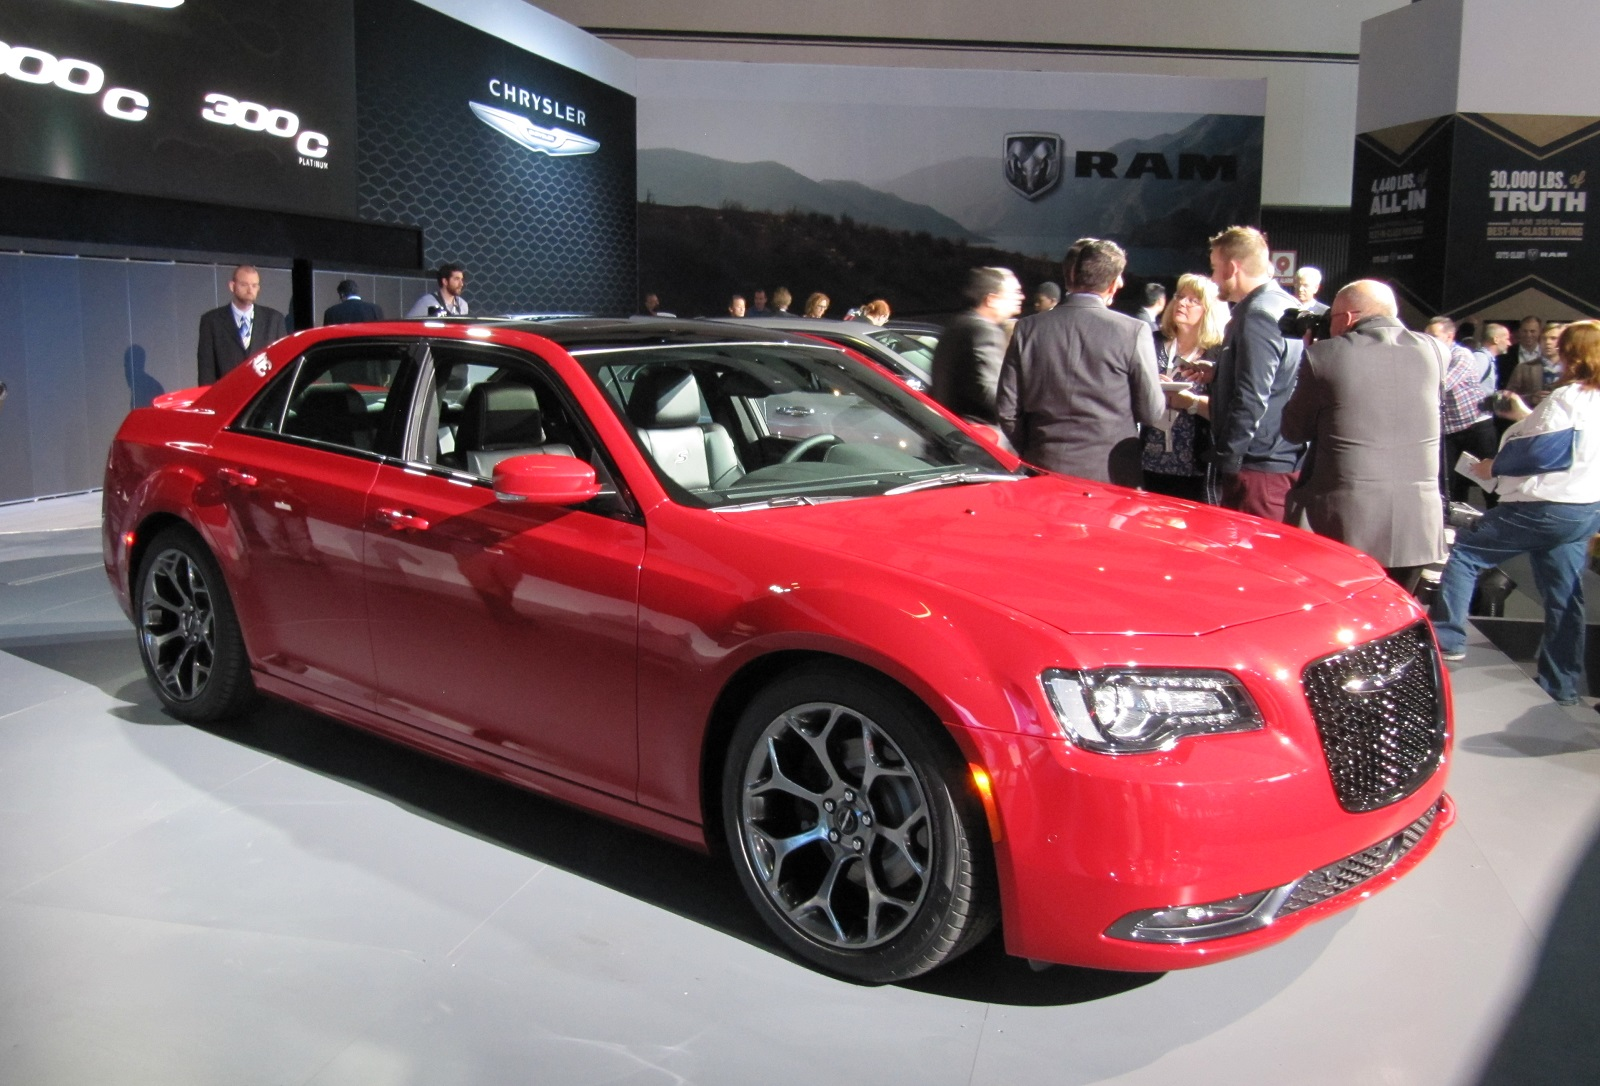 2015 chrysler 300 preview 2014 los angeles auto show. Black Bedroom Furniture Sets. Home Design Ideas